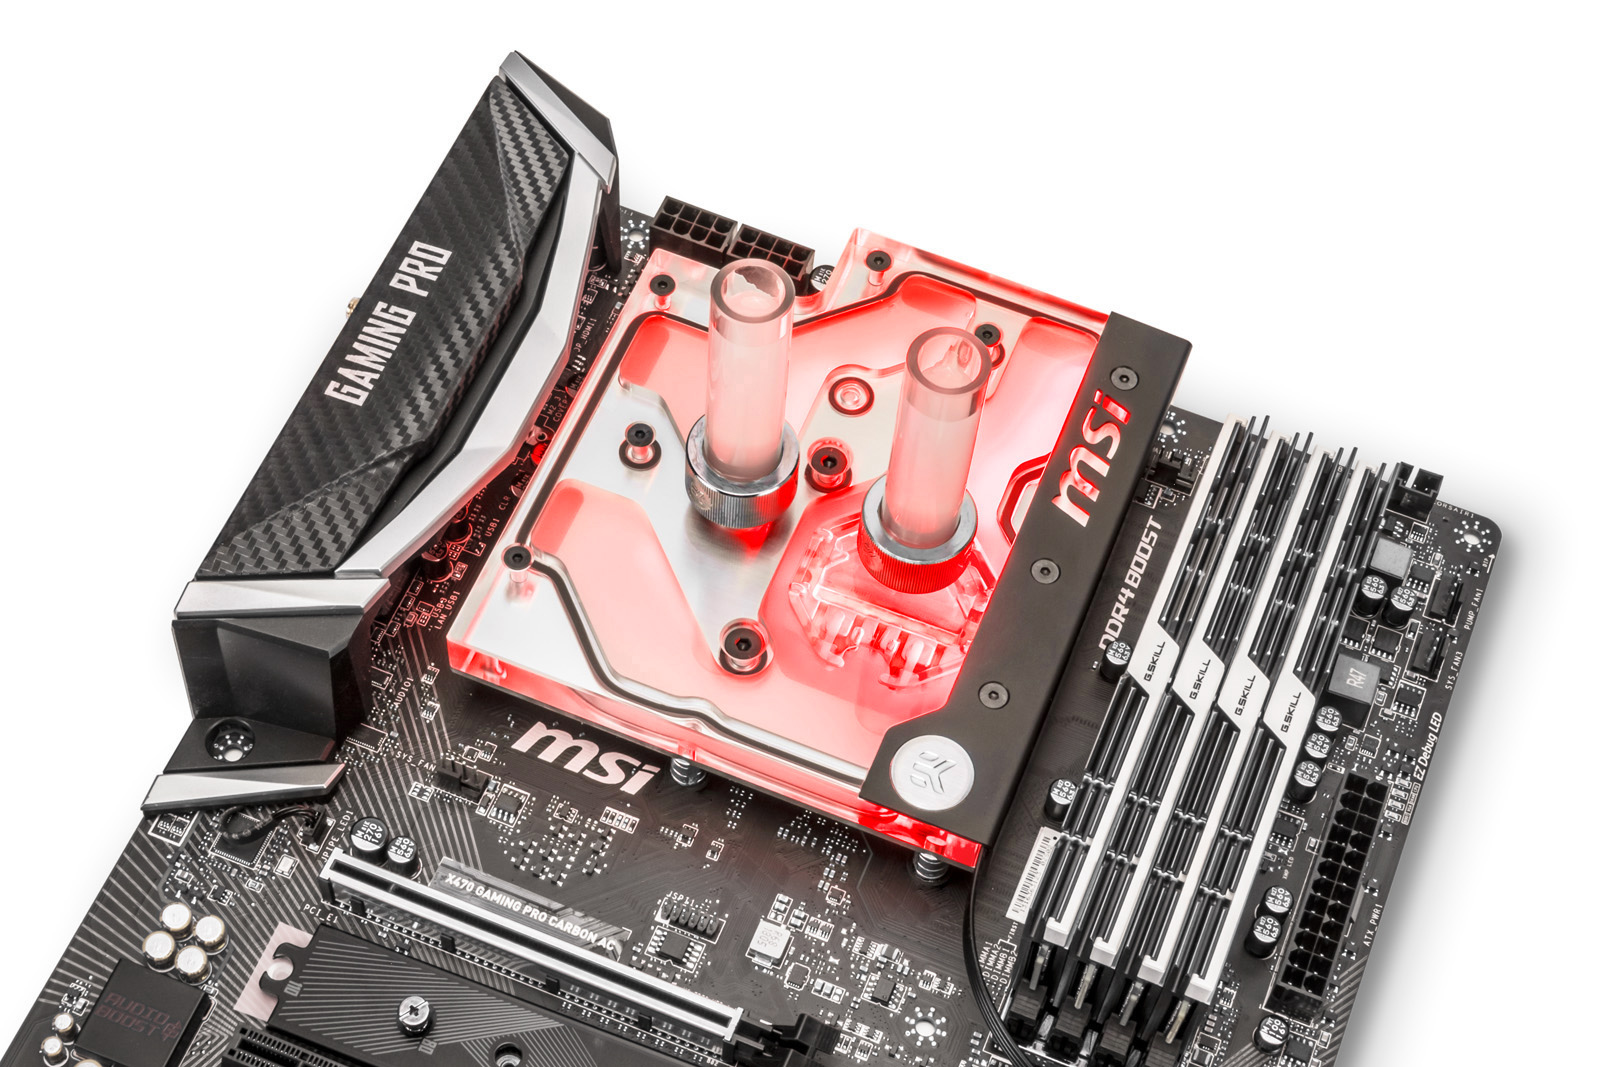 EK® is releasing a new AM4 monoblock for the MSI® X470 Gaming Pro